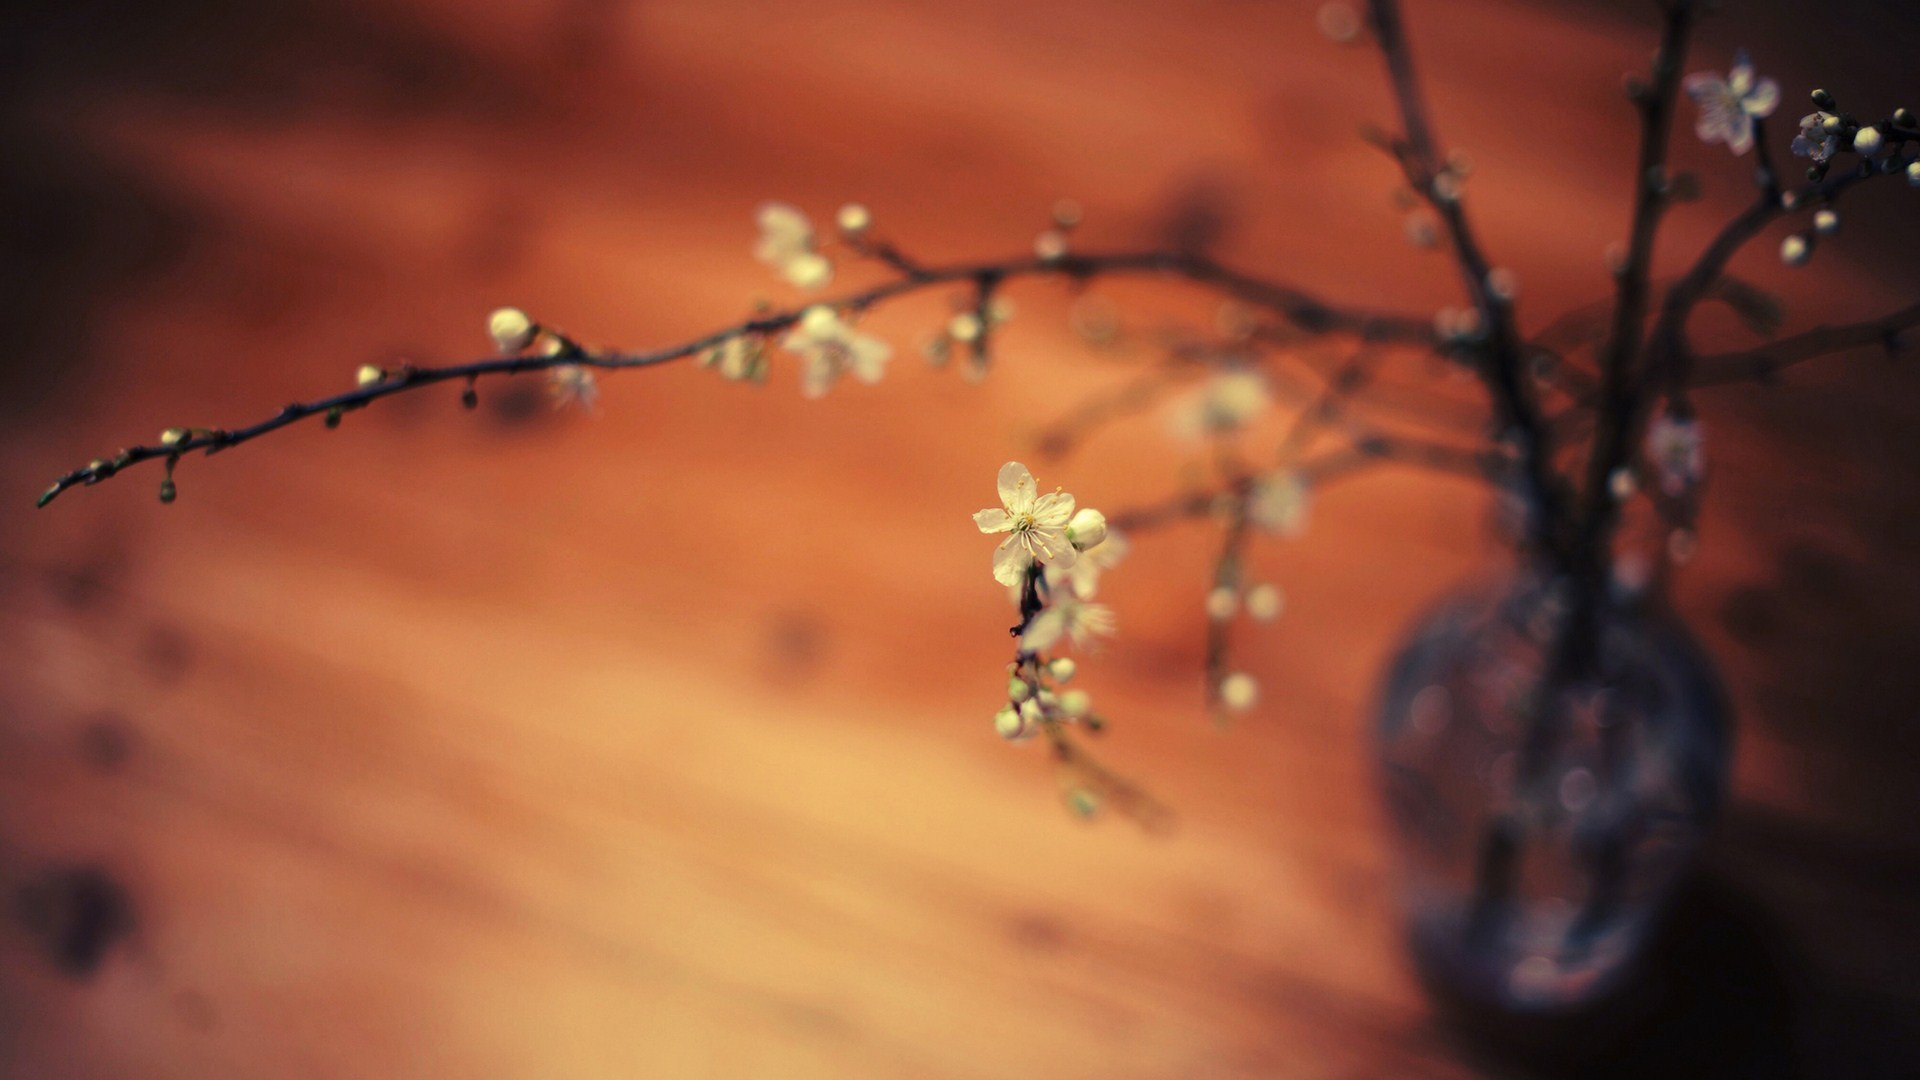 Vase Branches Flowers Macro HD Wallpaper